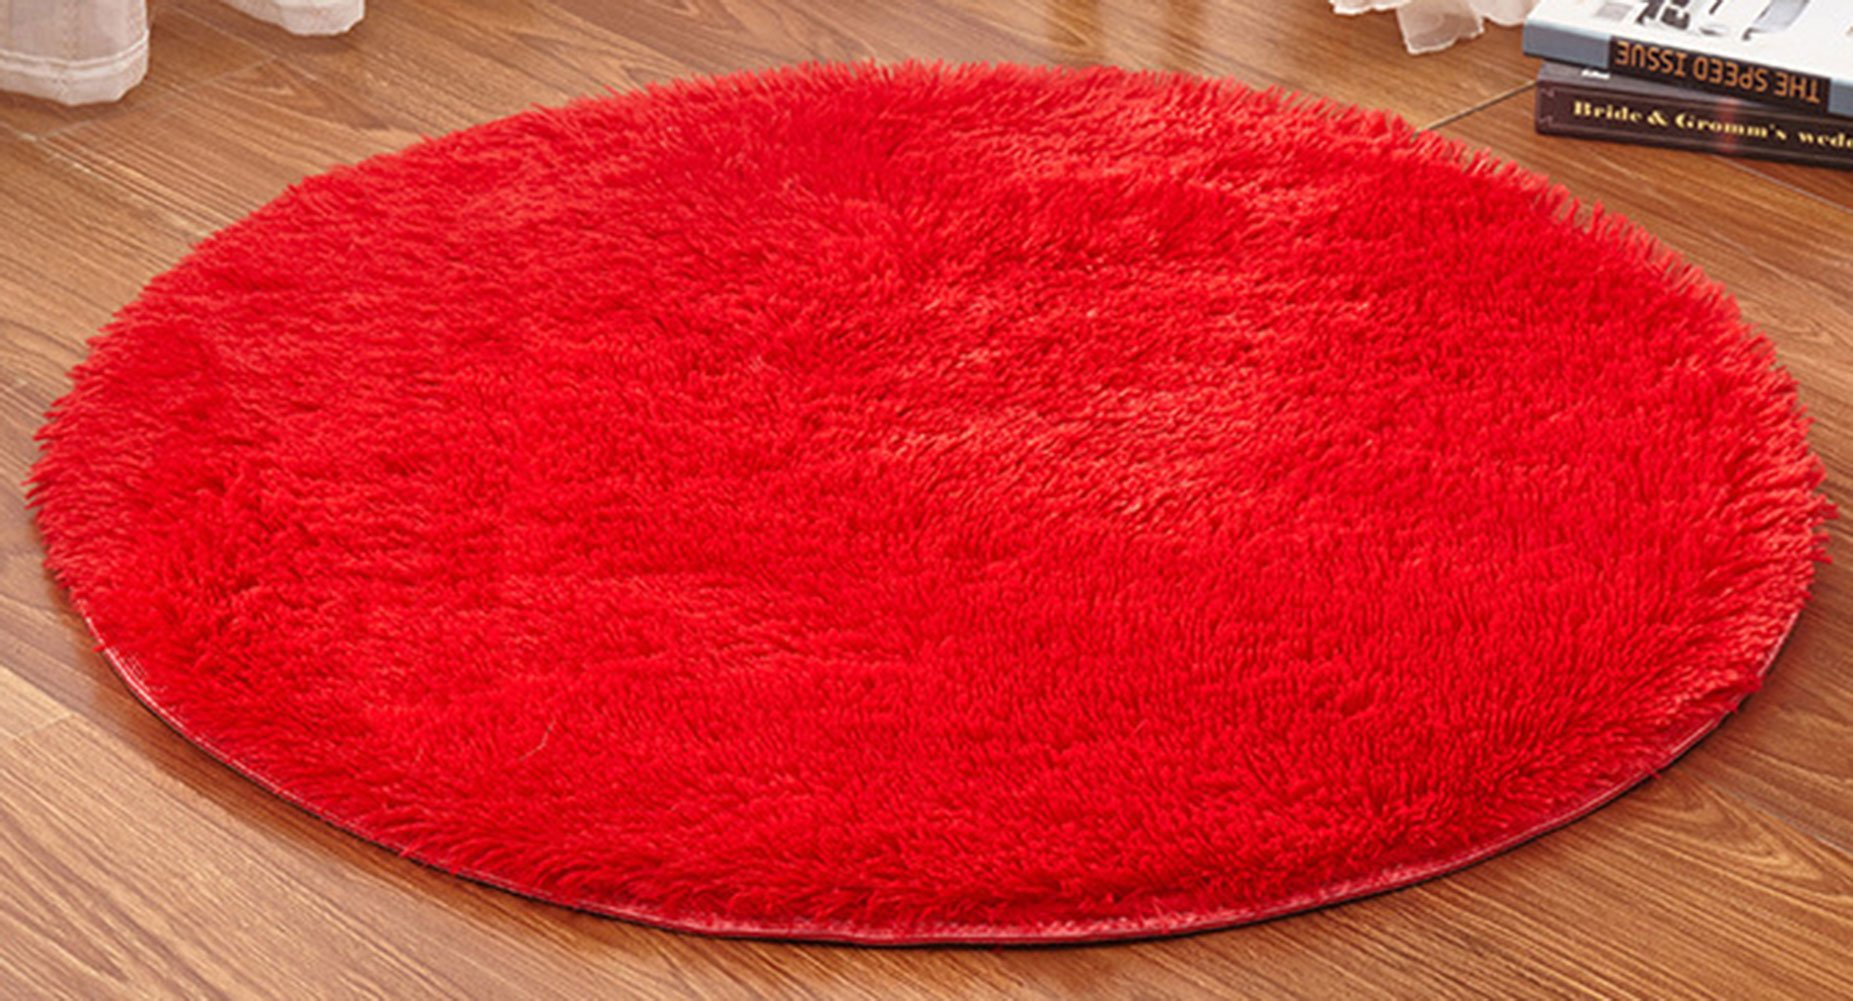 Happy Cool 47.0'' Round Long Wool Mat Runner Floor Rug Shaggy Oval Doormat Entry Carpet Front Entrance Indoor Outdoor Mats for Children Kid Play Room Decor Decorative Living Room Red